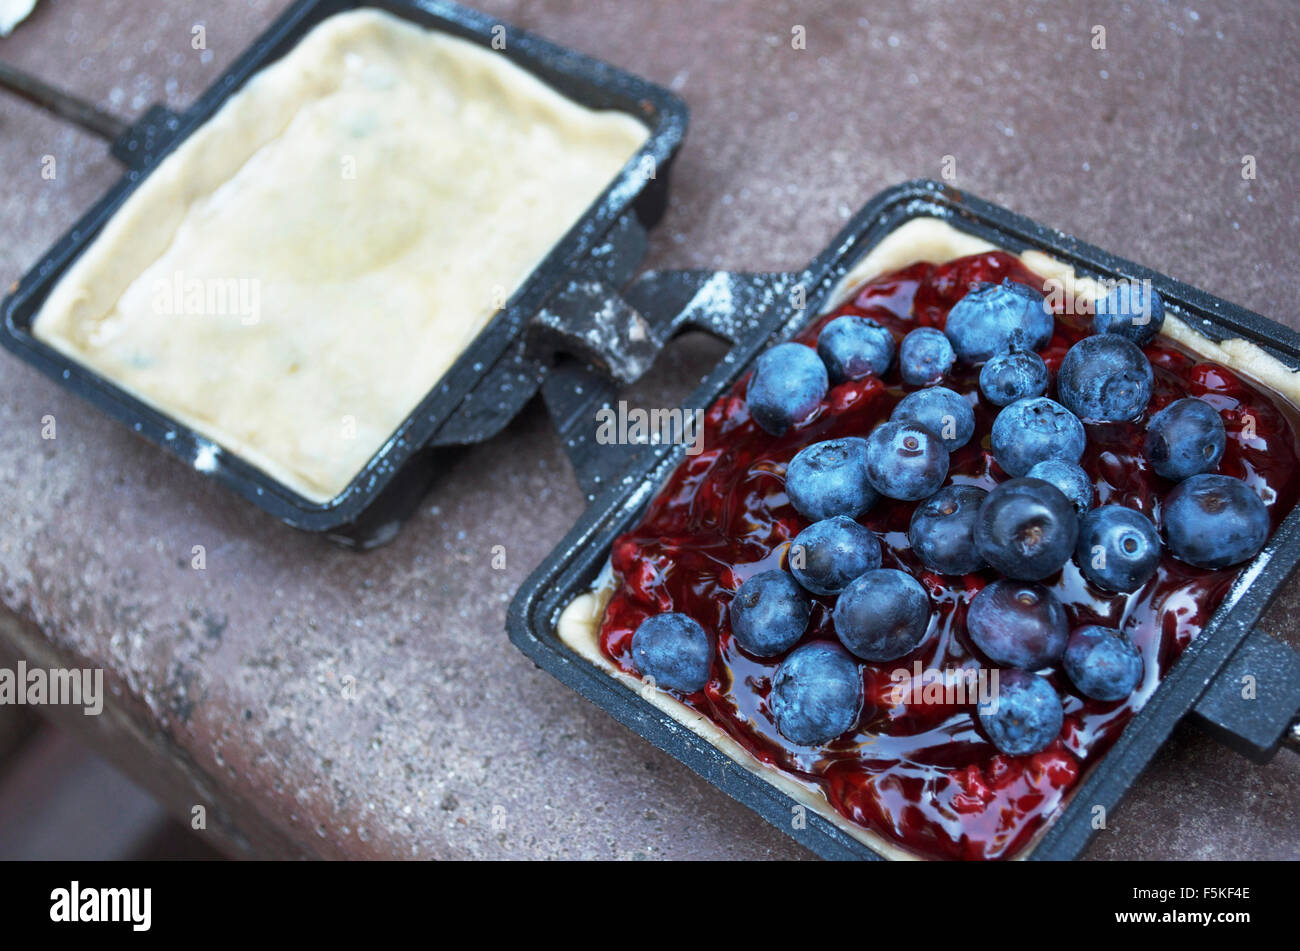 Opened Hobo, or Camp Pie Before Cooking Made Of Blueberries - Stock Image